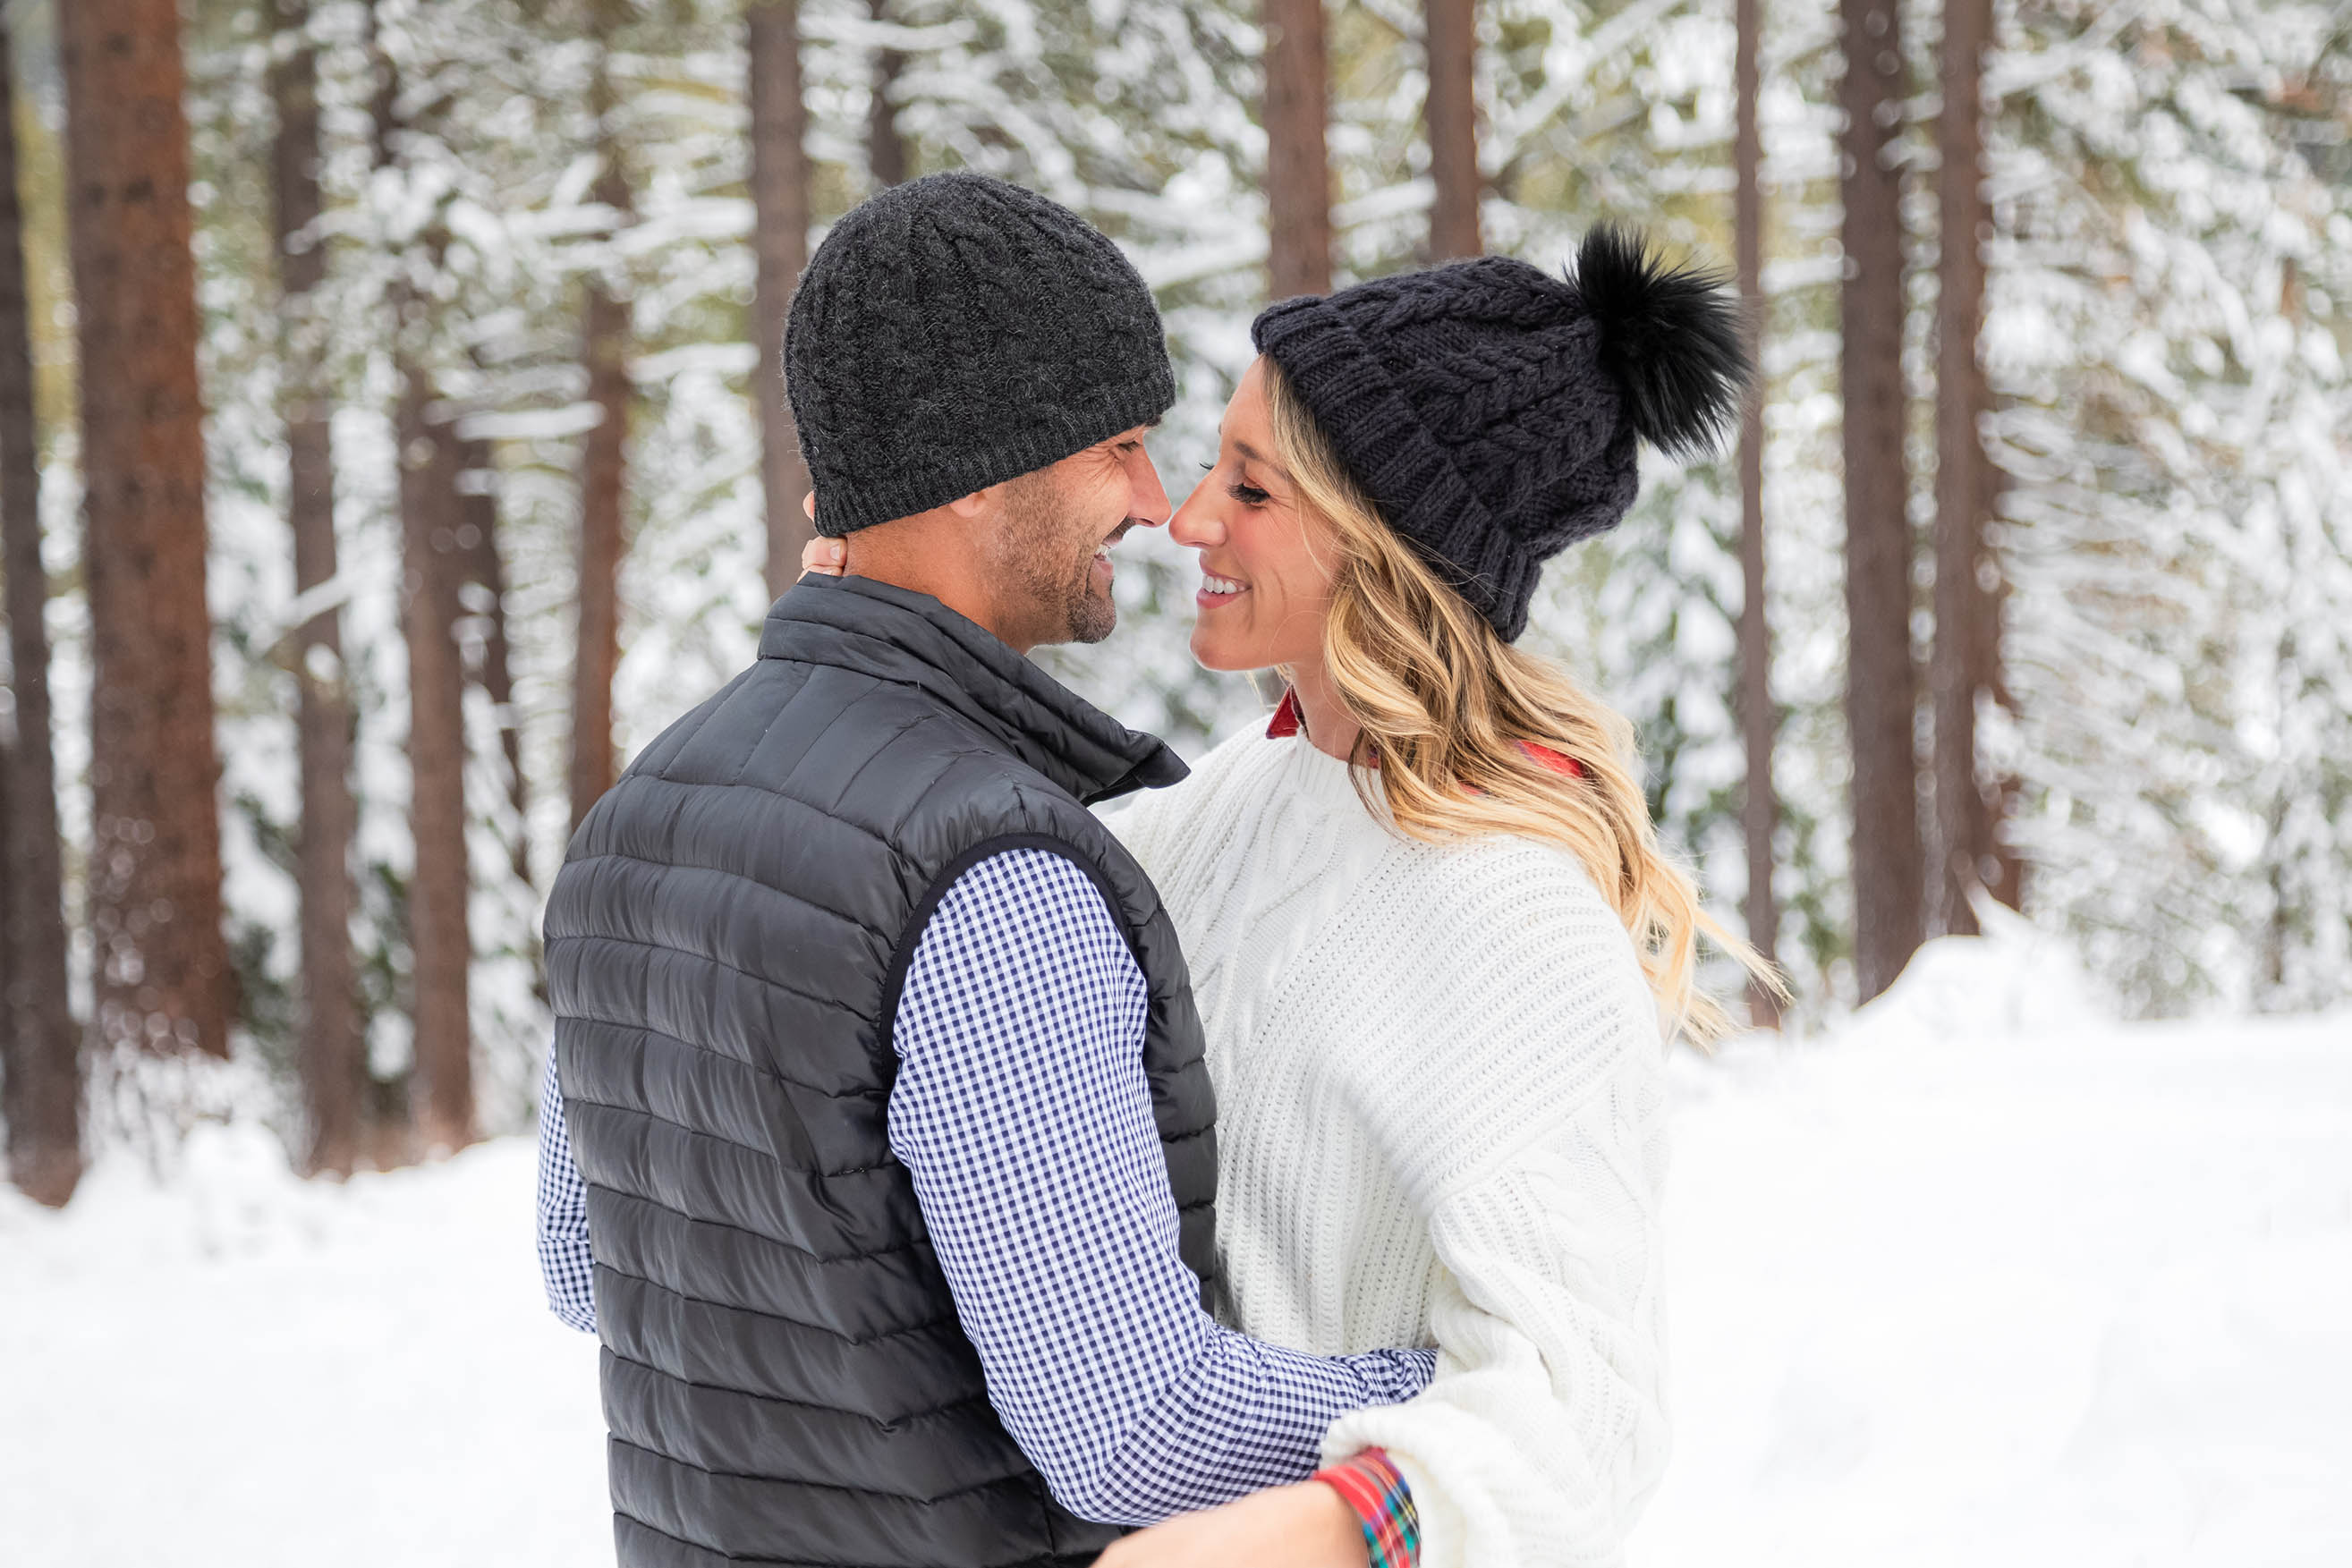 Lake Tahoe family winter photo session with Reno Tahoe Photographer